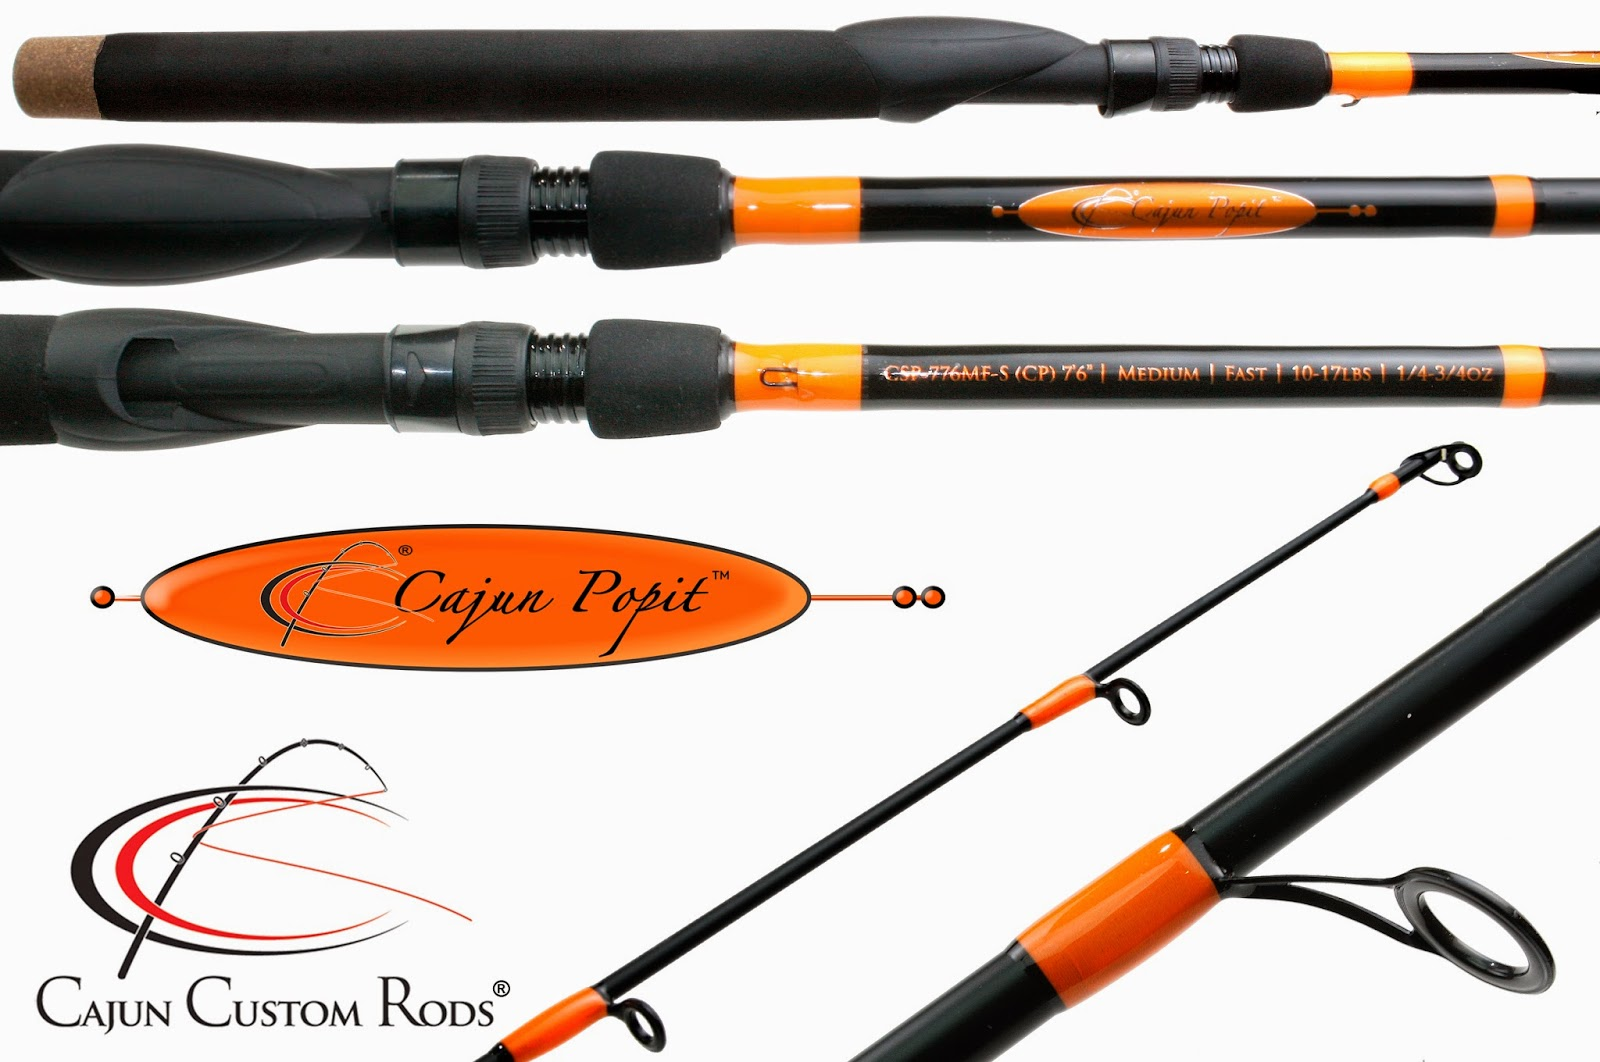 cajun custom rods cajun popit the best popping cork